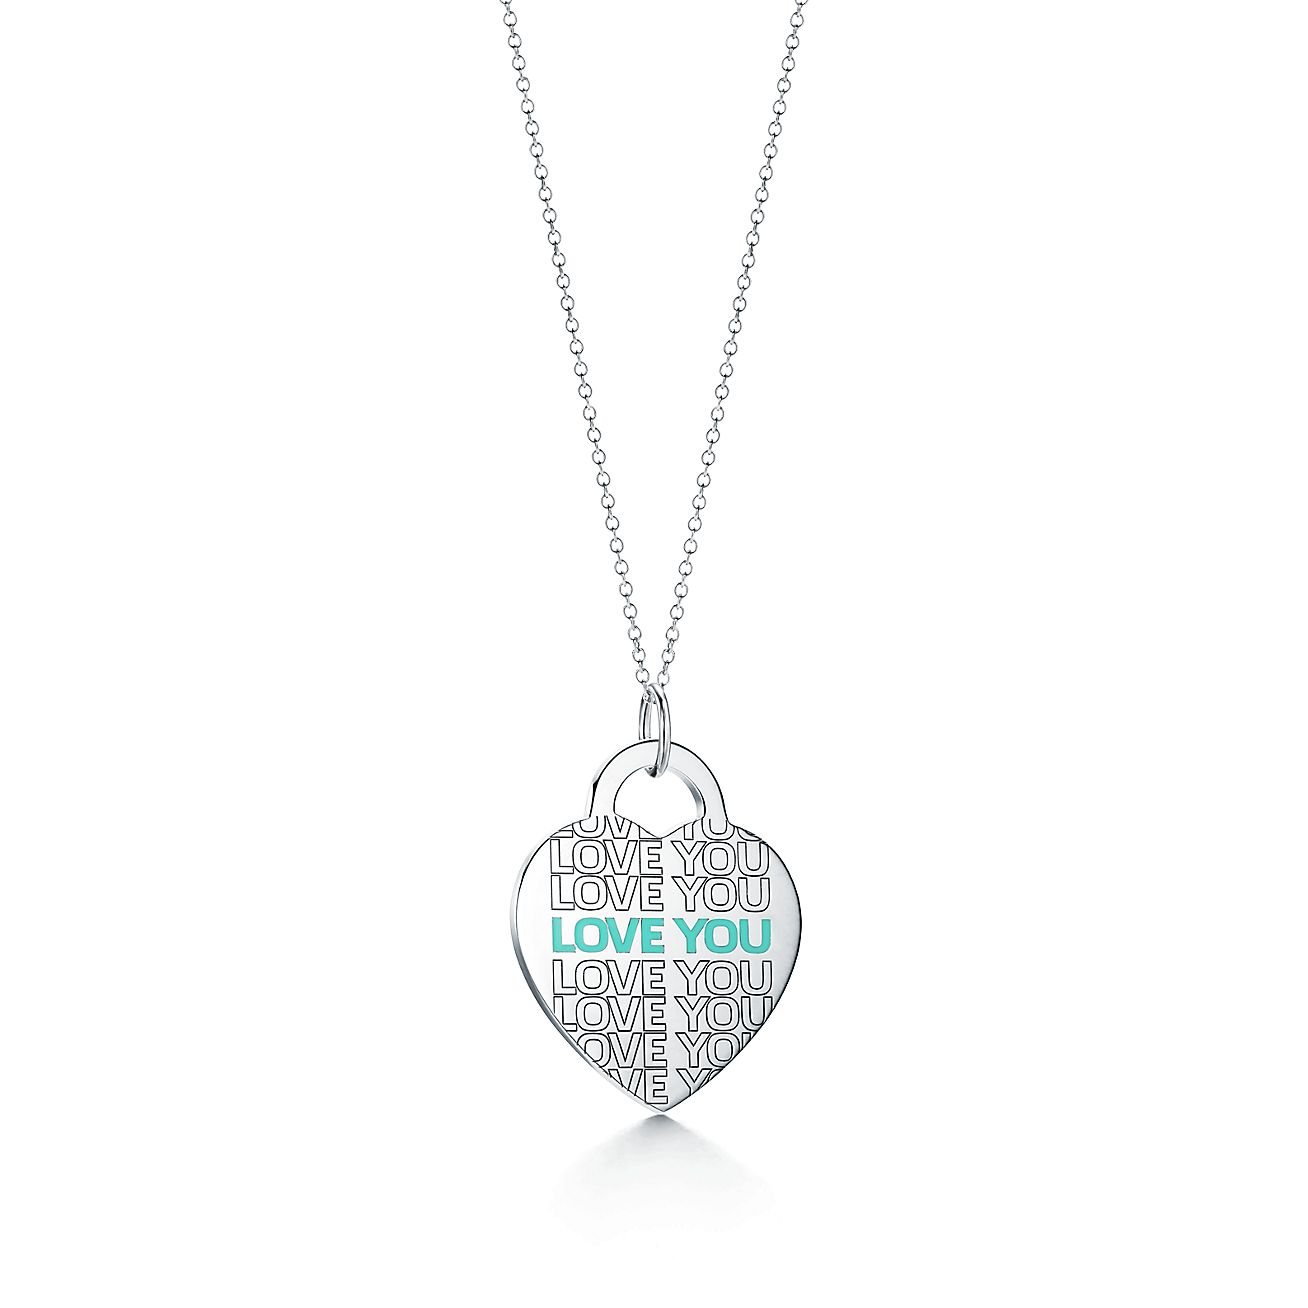 Return To Tiffany Love You Heart Tag Charm In Sterling Silver Large Tiffany Co